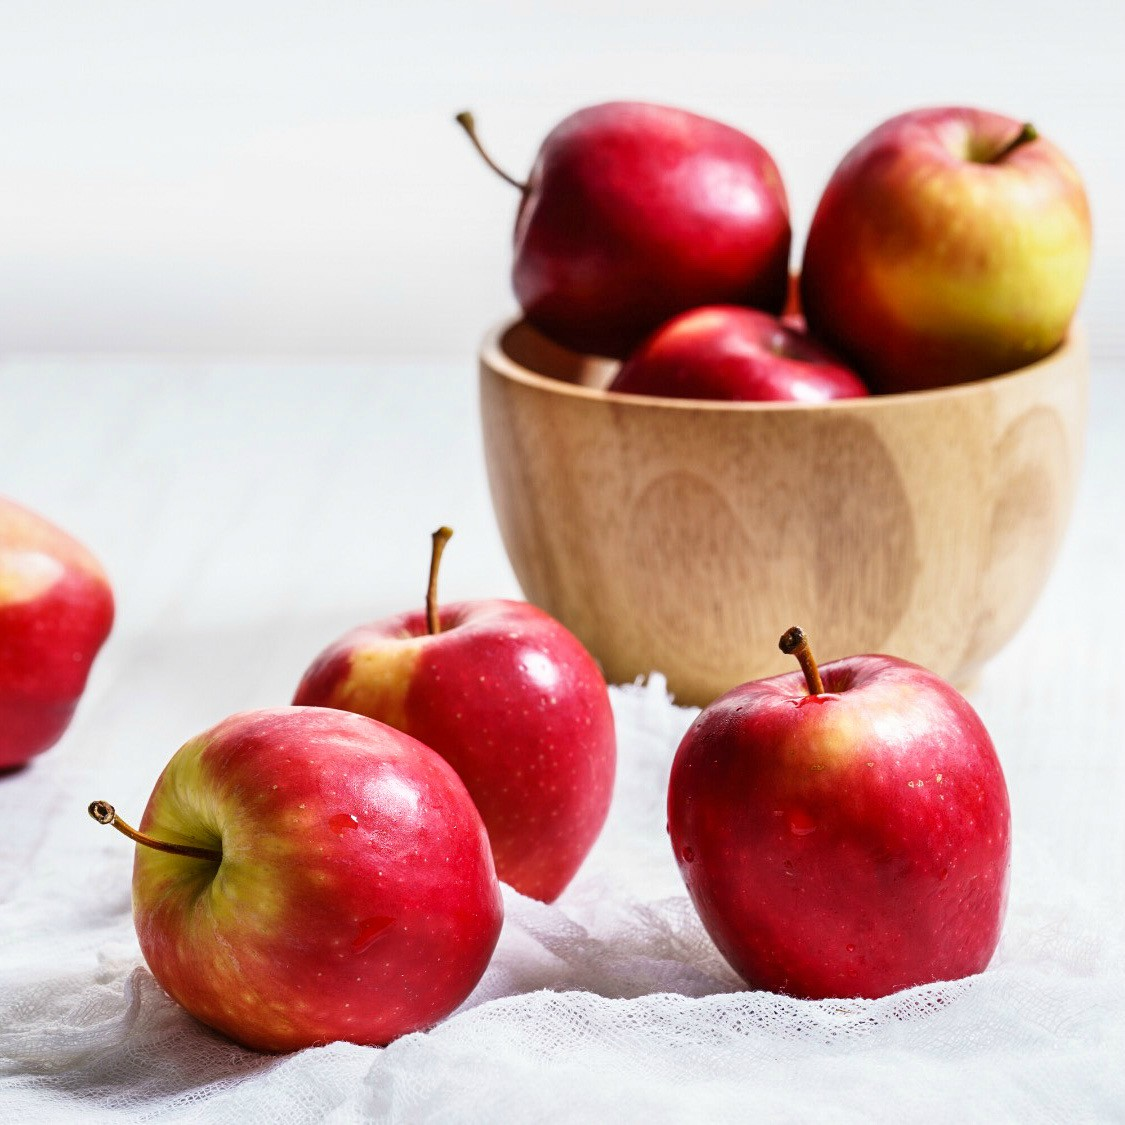 An image of red apples.